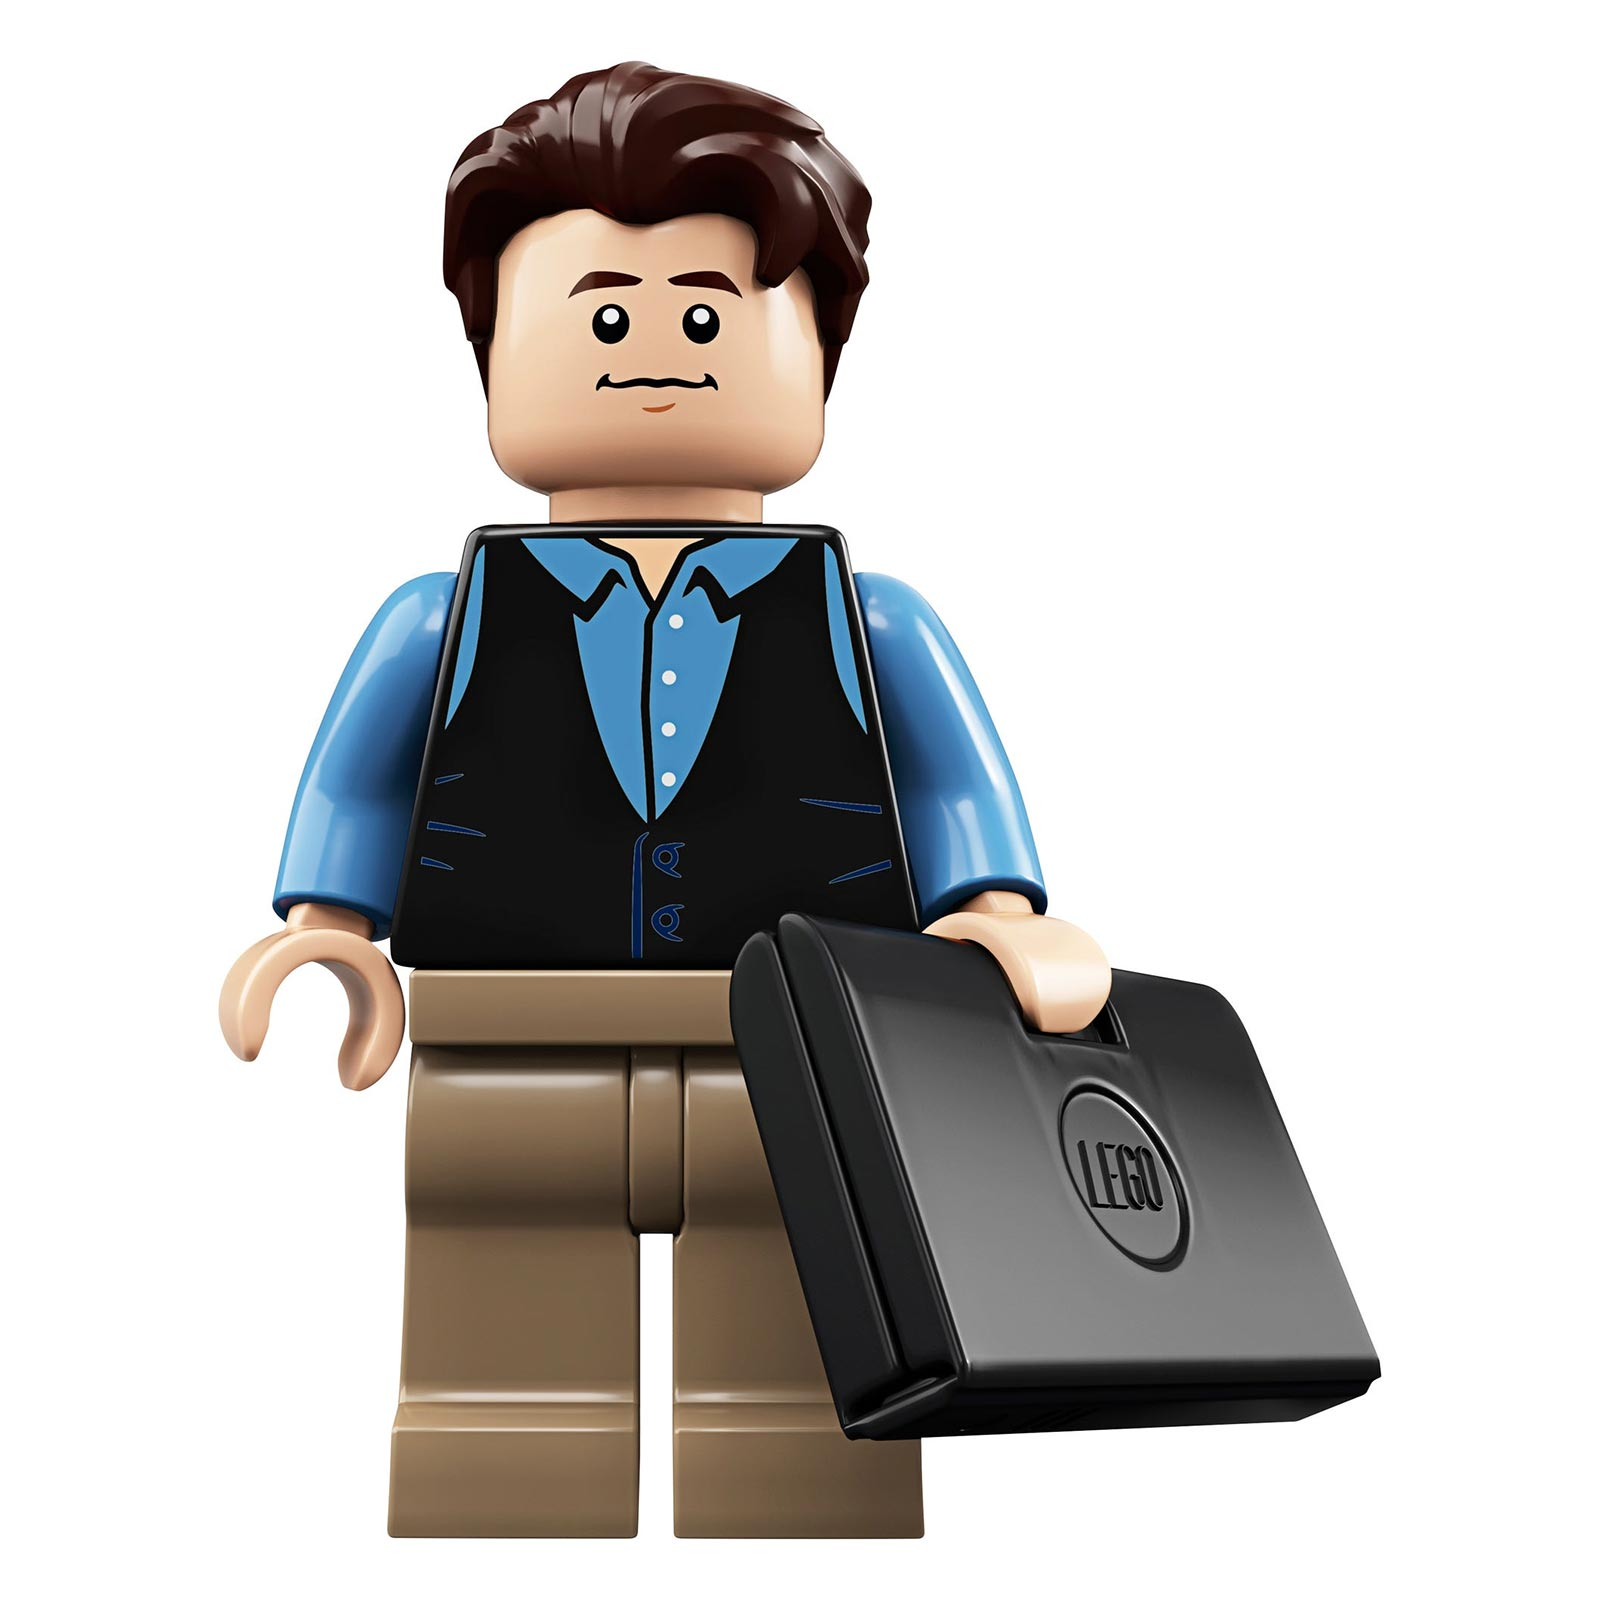 LEGO Friends Chandler Bing Minifigure